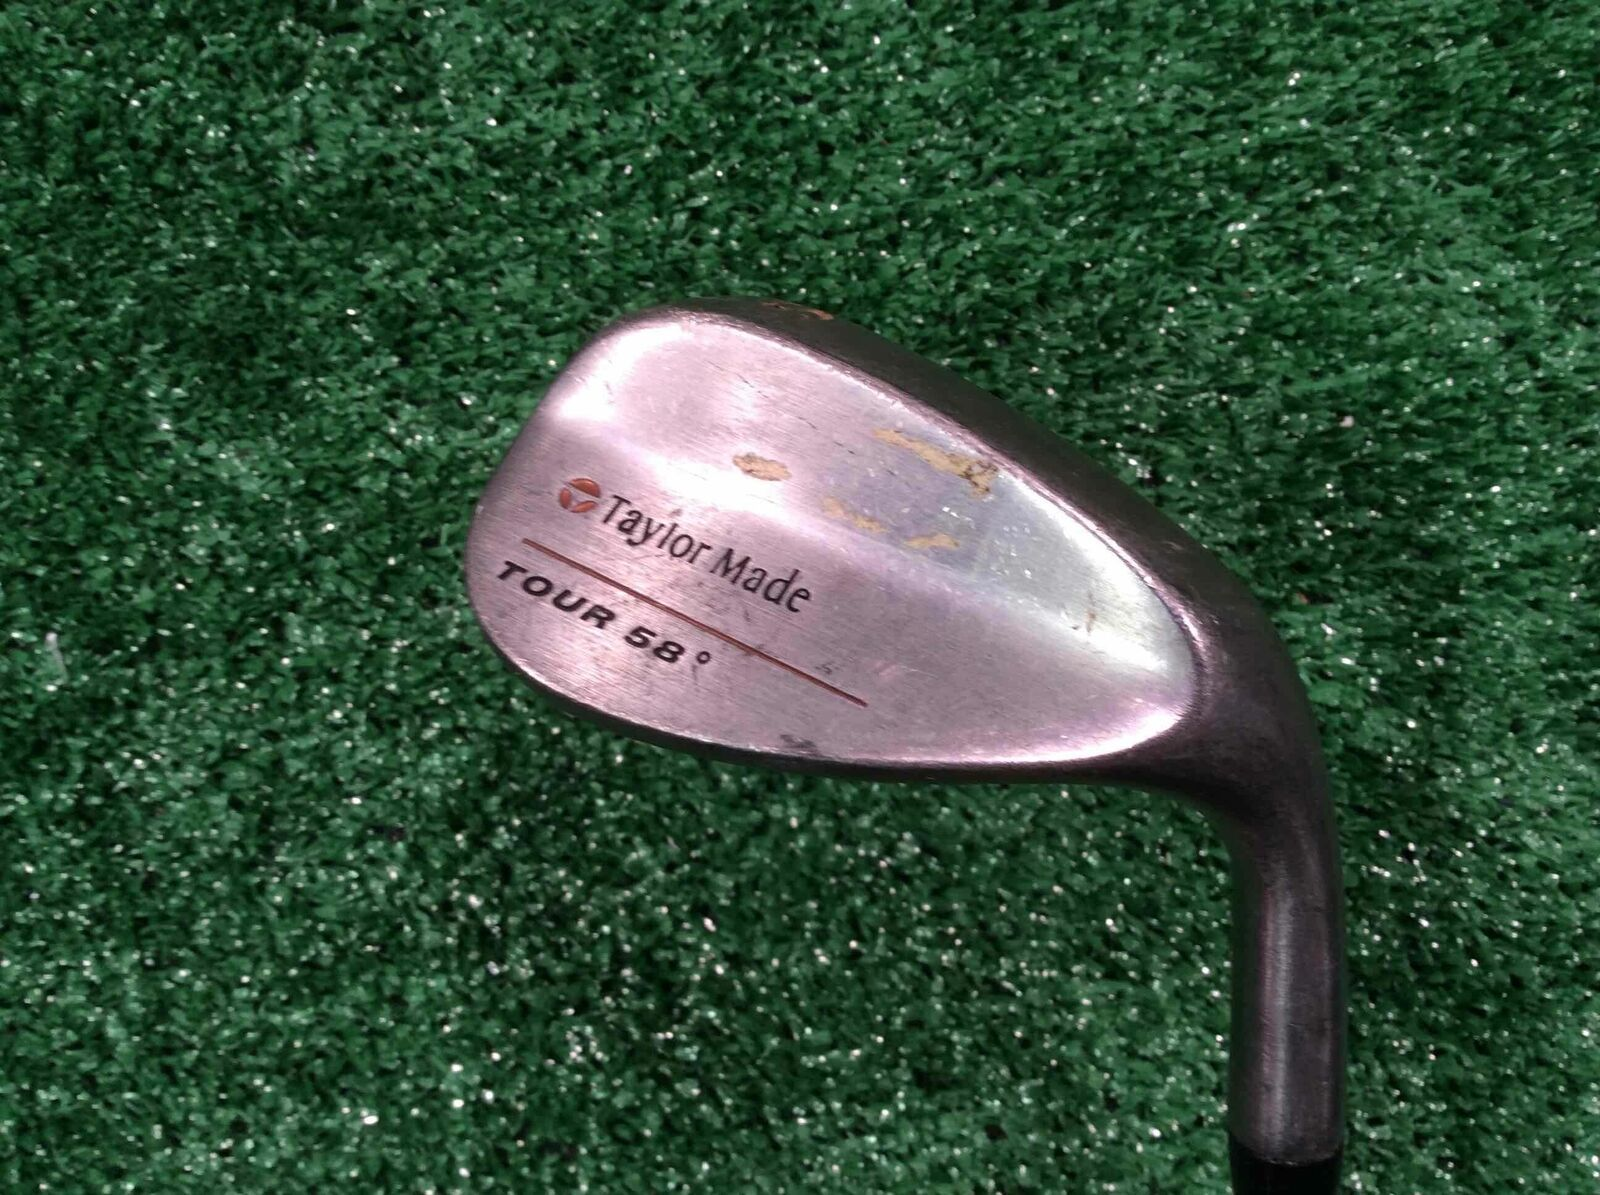 Taylormade Tour S Wedge 58 RH - $44.99